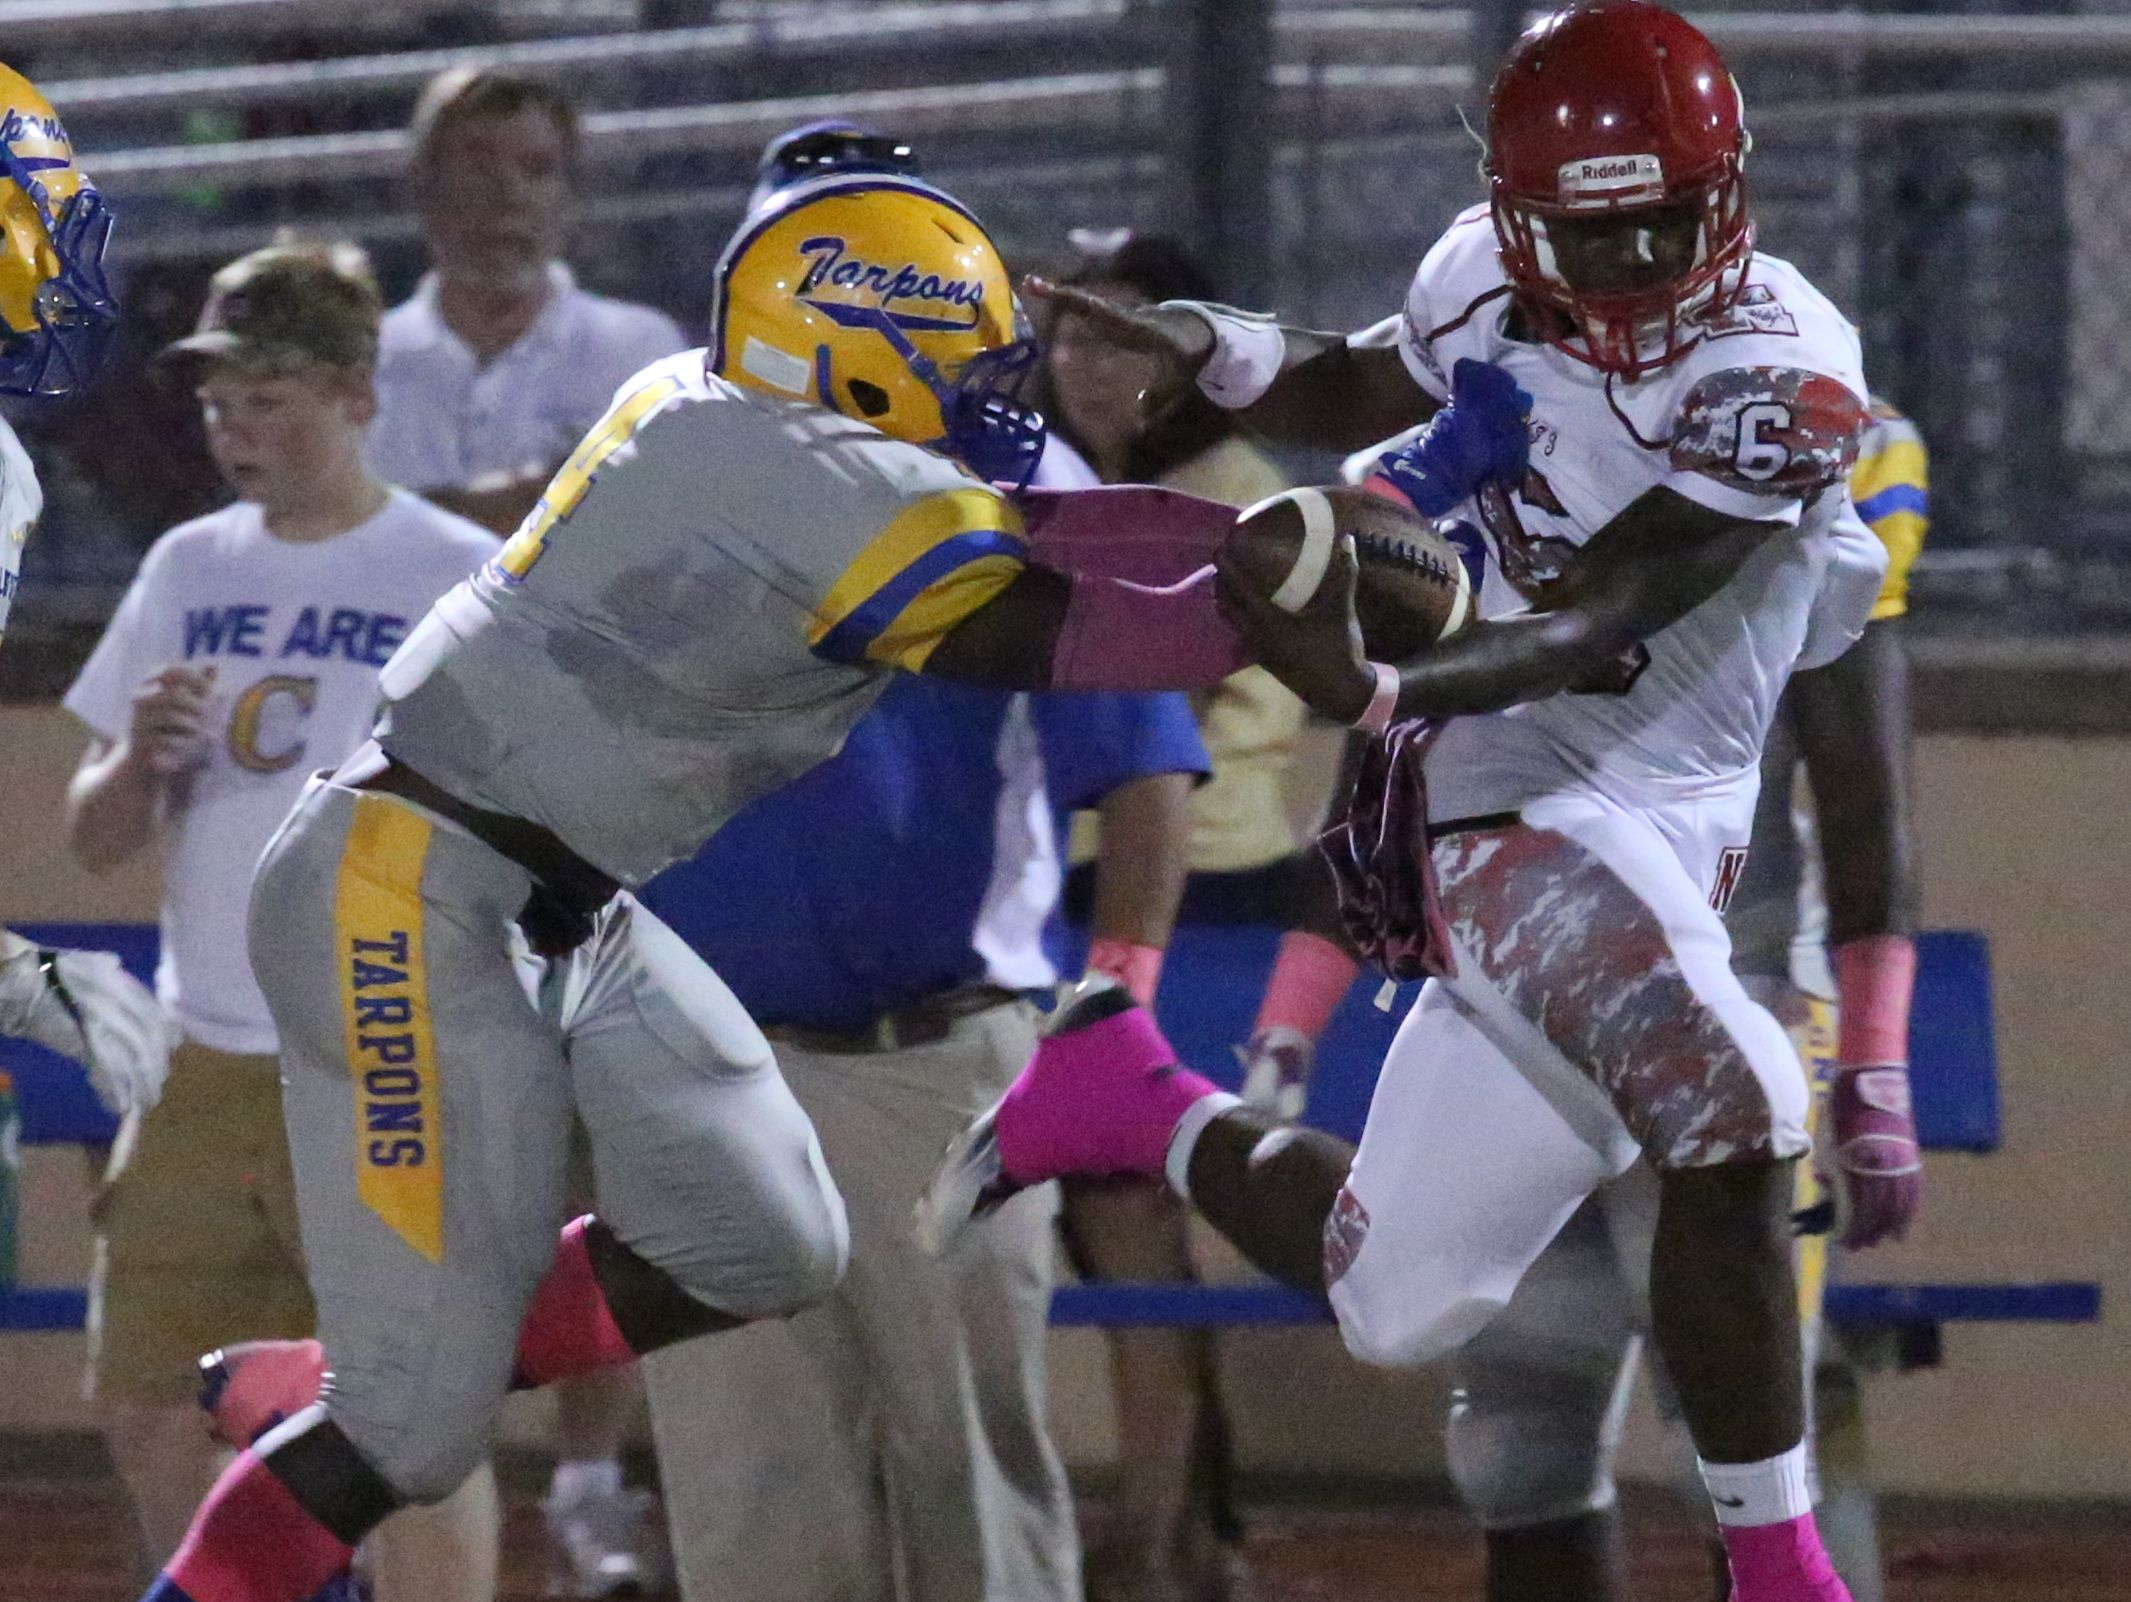 North Fort Myers Zaquandre White is pushed out of bounds by a Charlotte player as he gained yards. North Fort Myers played at Charlotte Friday night.